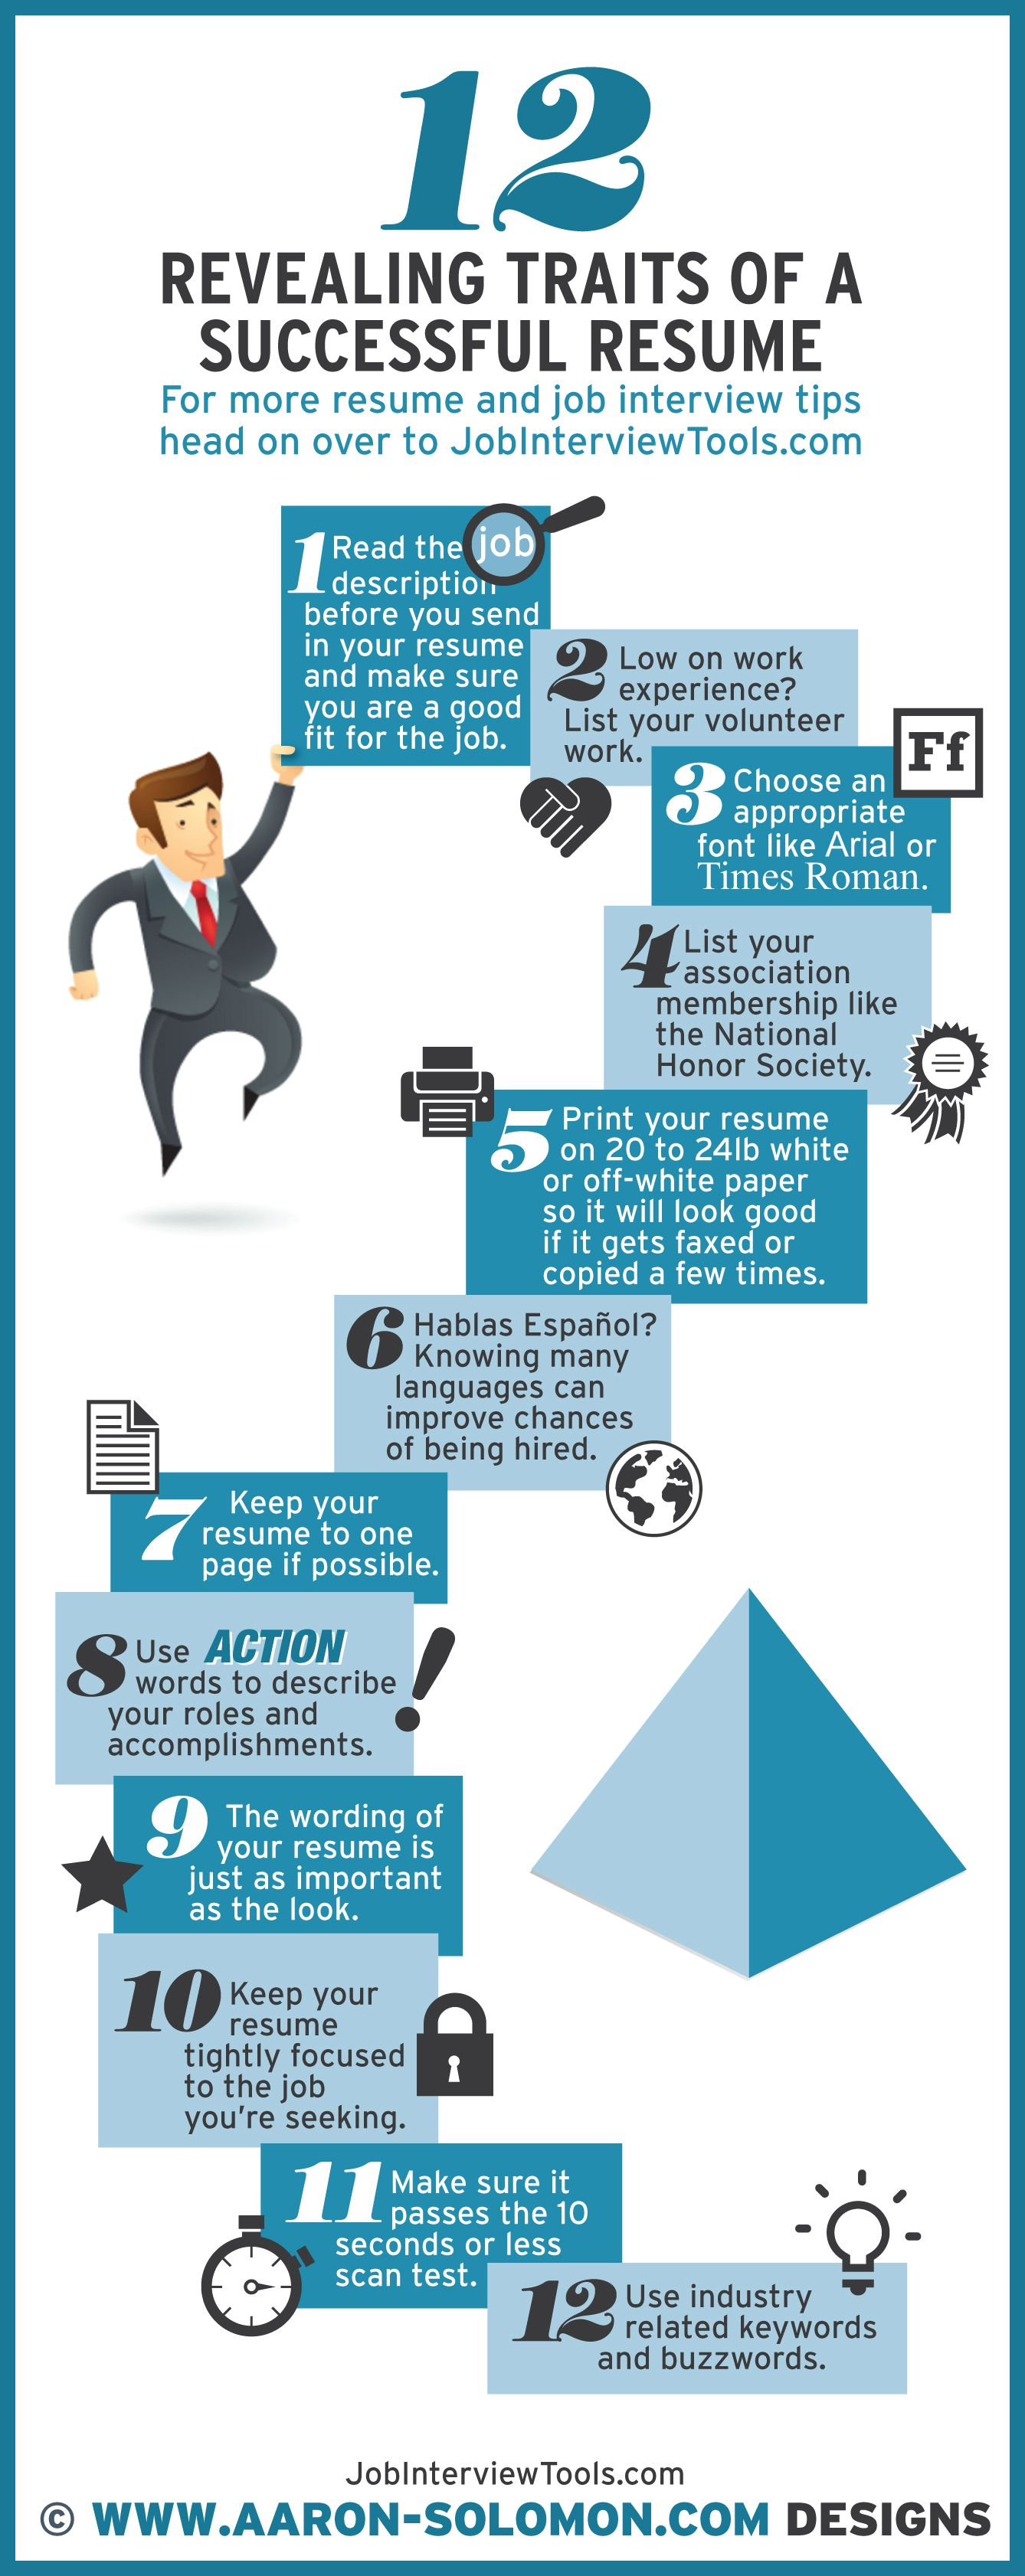 revealing traits of a successful resume infographic job gulfbankers part of the forum international group of companies is a highly specialized search and selection recruitment consultancy focusing on the